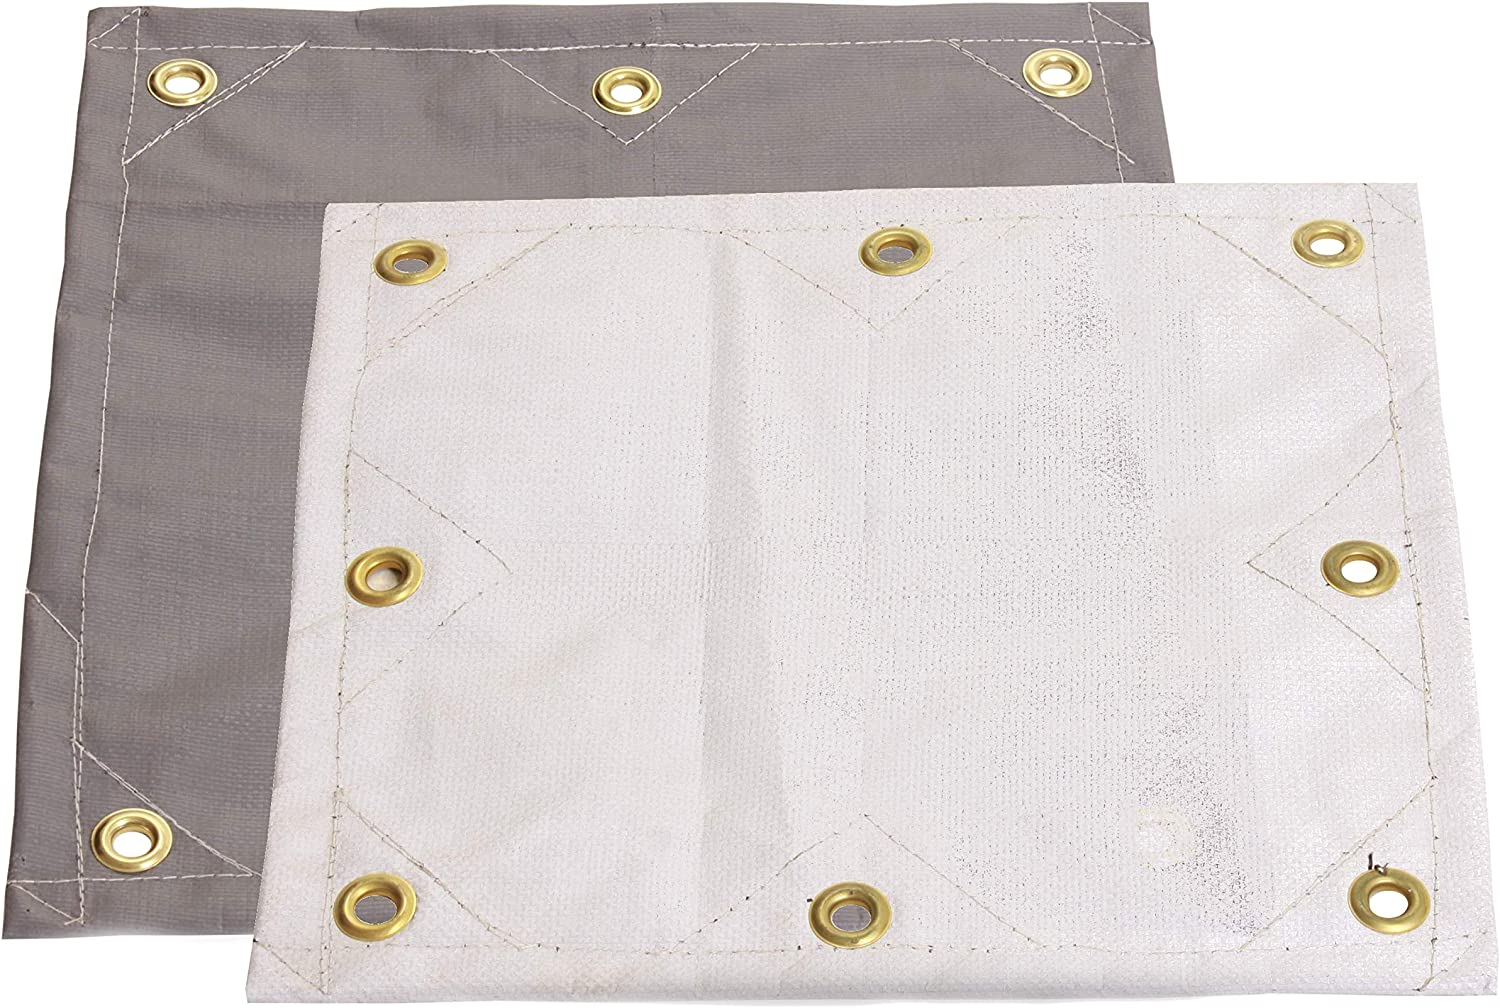 Gray//White Mold and Mildew Resistant! 10x12 16.5 MIL Super-Strong Poly Tarp Cover Water